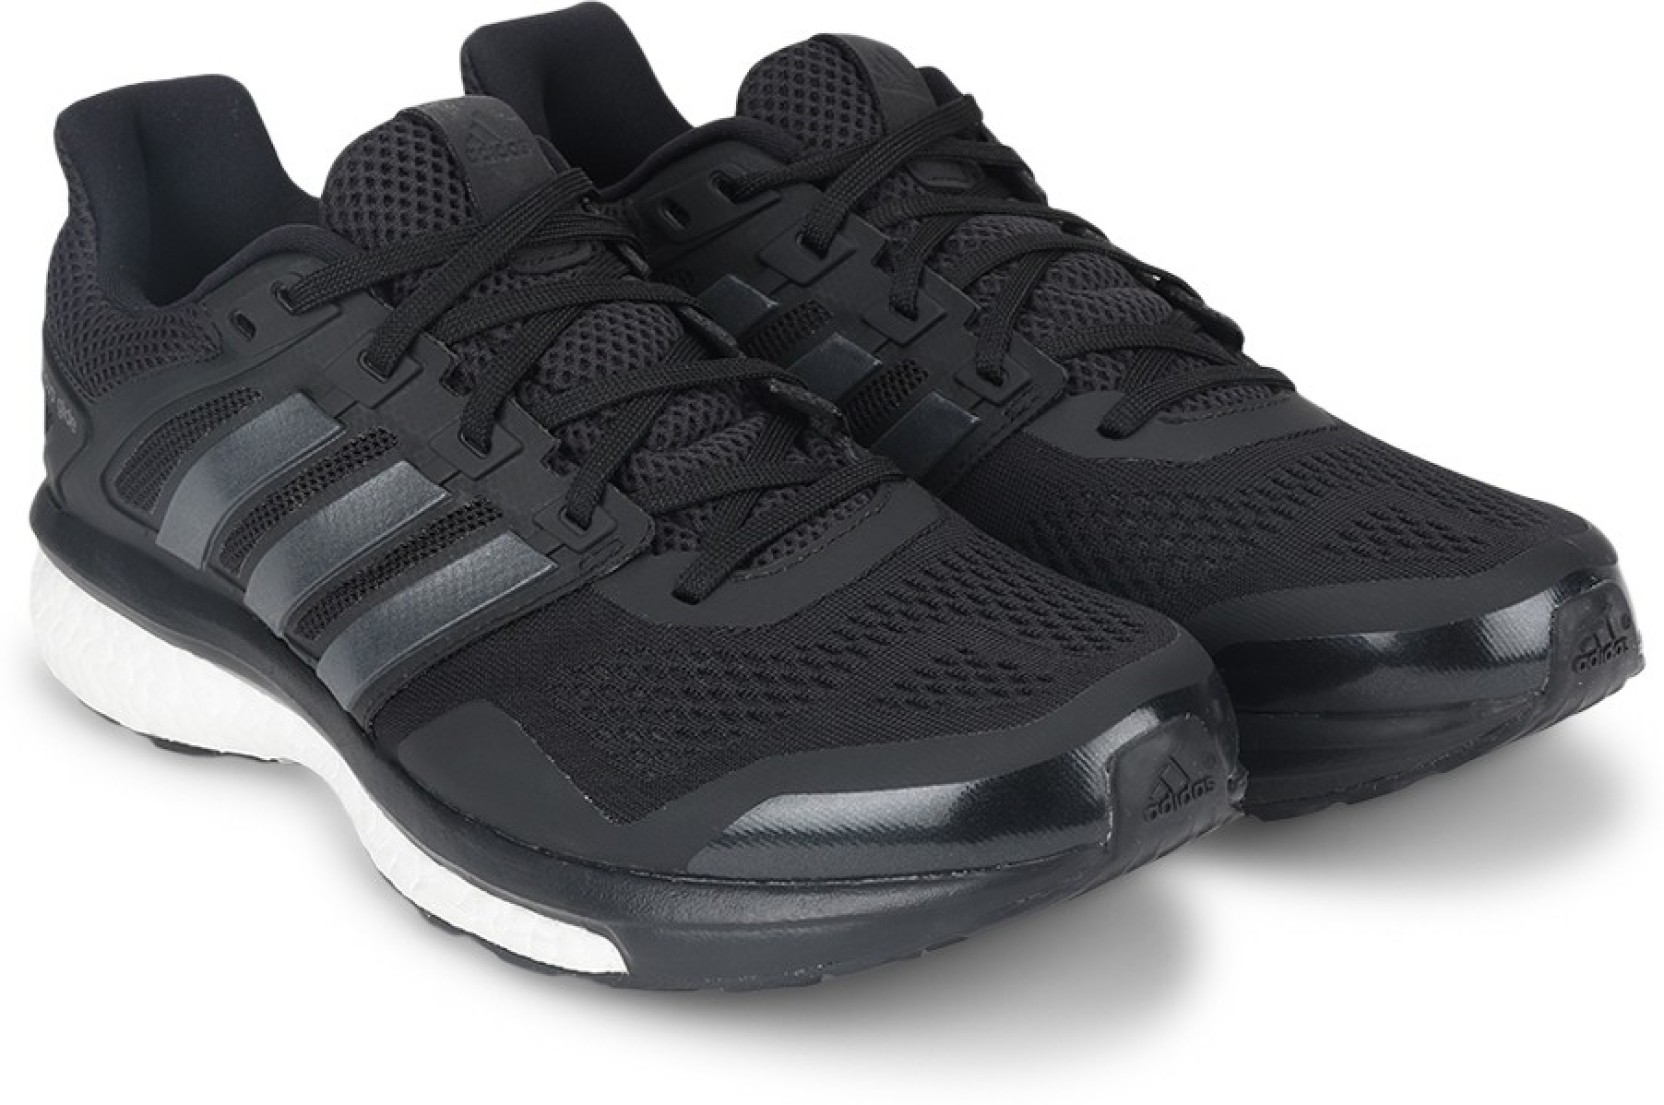 Adidas Supernova Glide M Shoes Running Buy Cblackutiblk Men For 8 rrpwdqHv